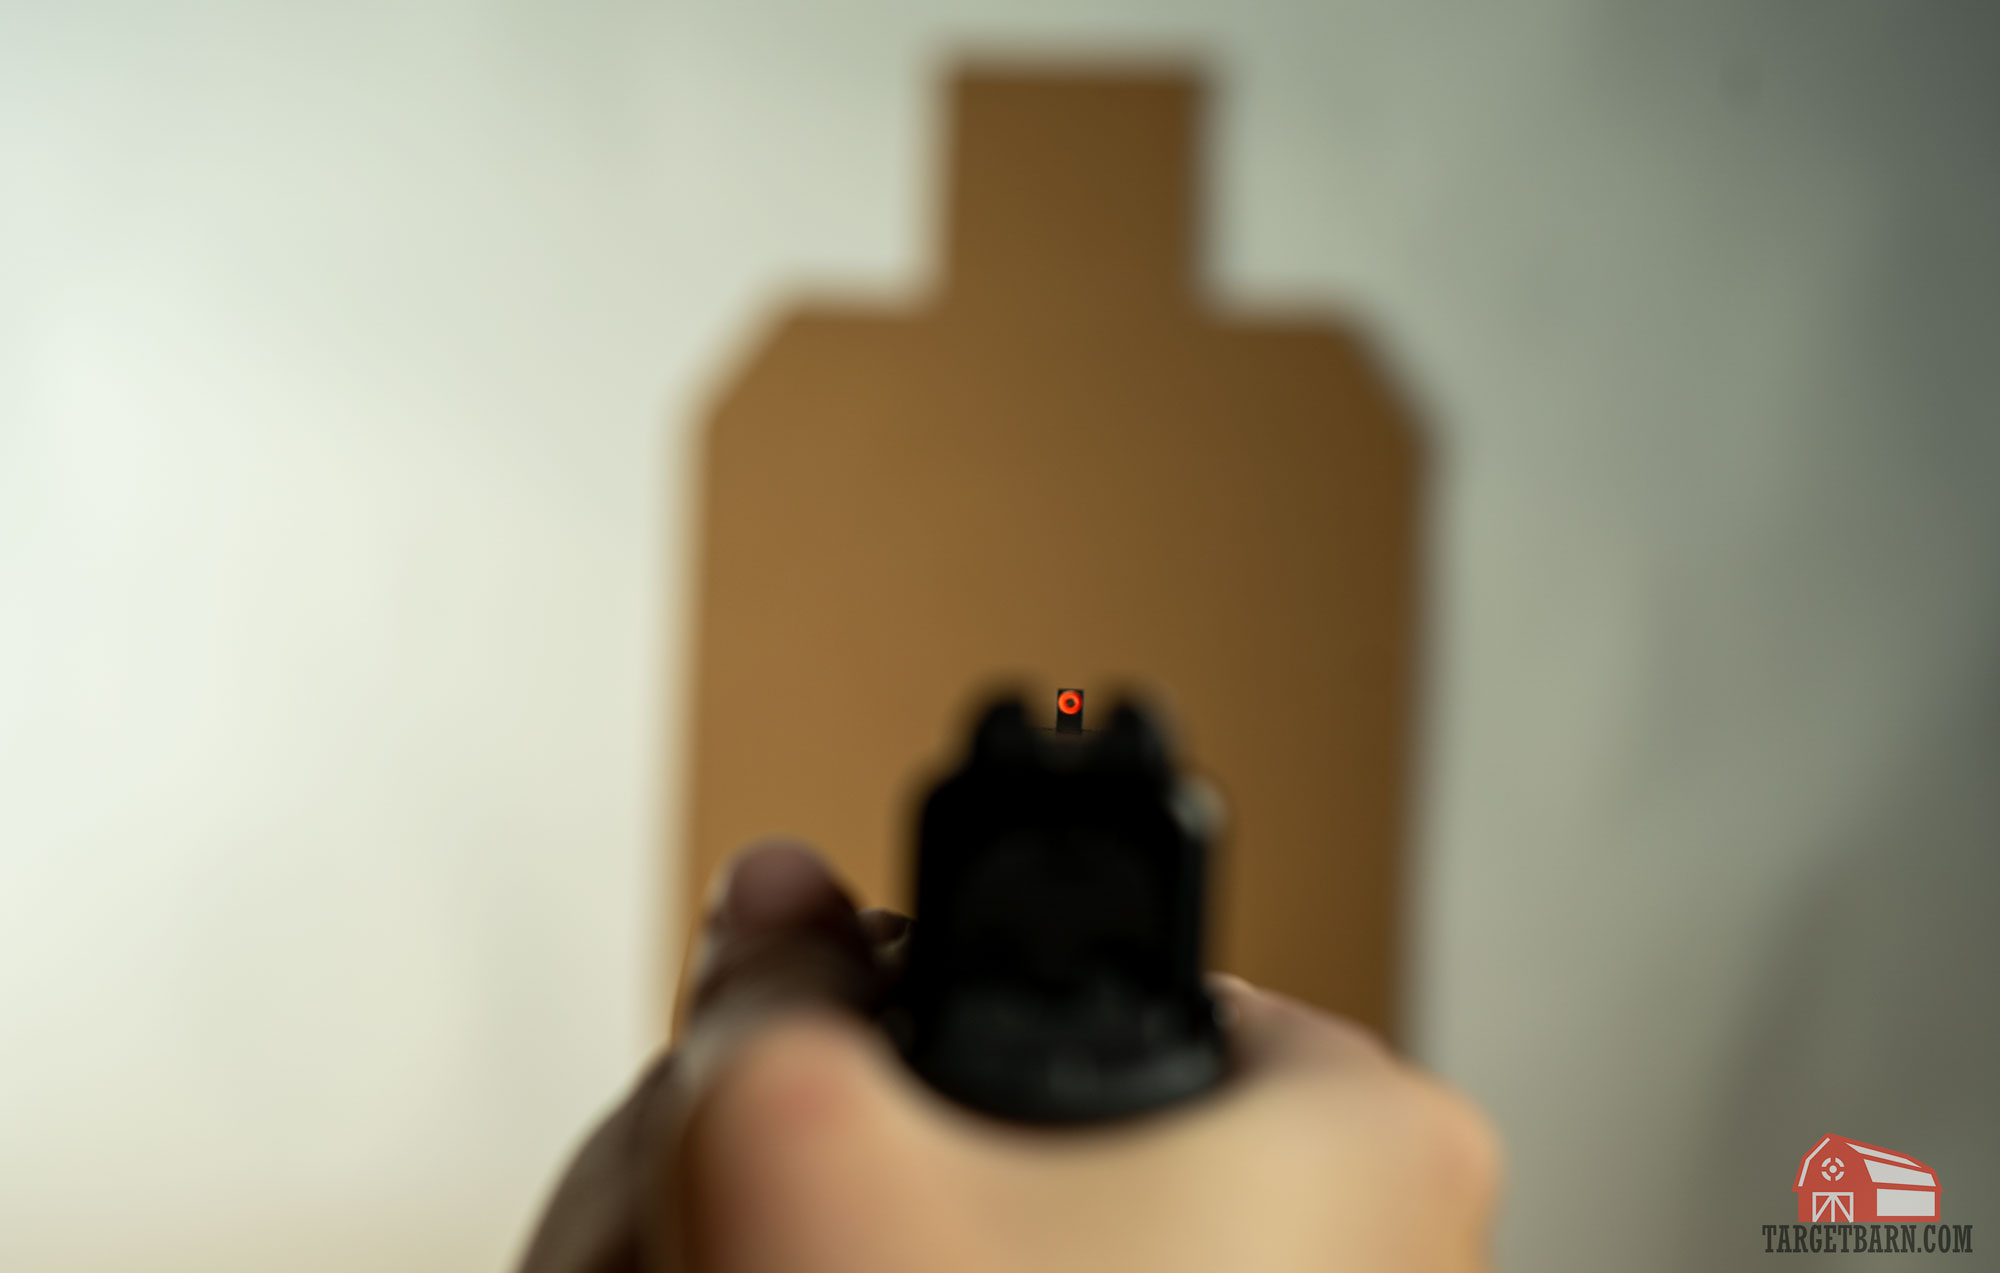 the optimal sight picture has a clear focus on the front sight with a blurry target